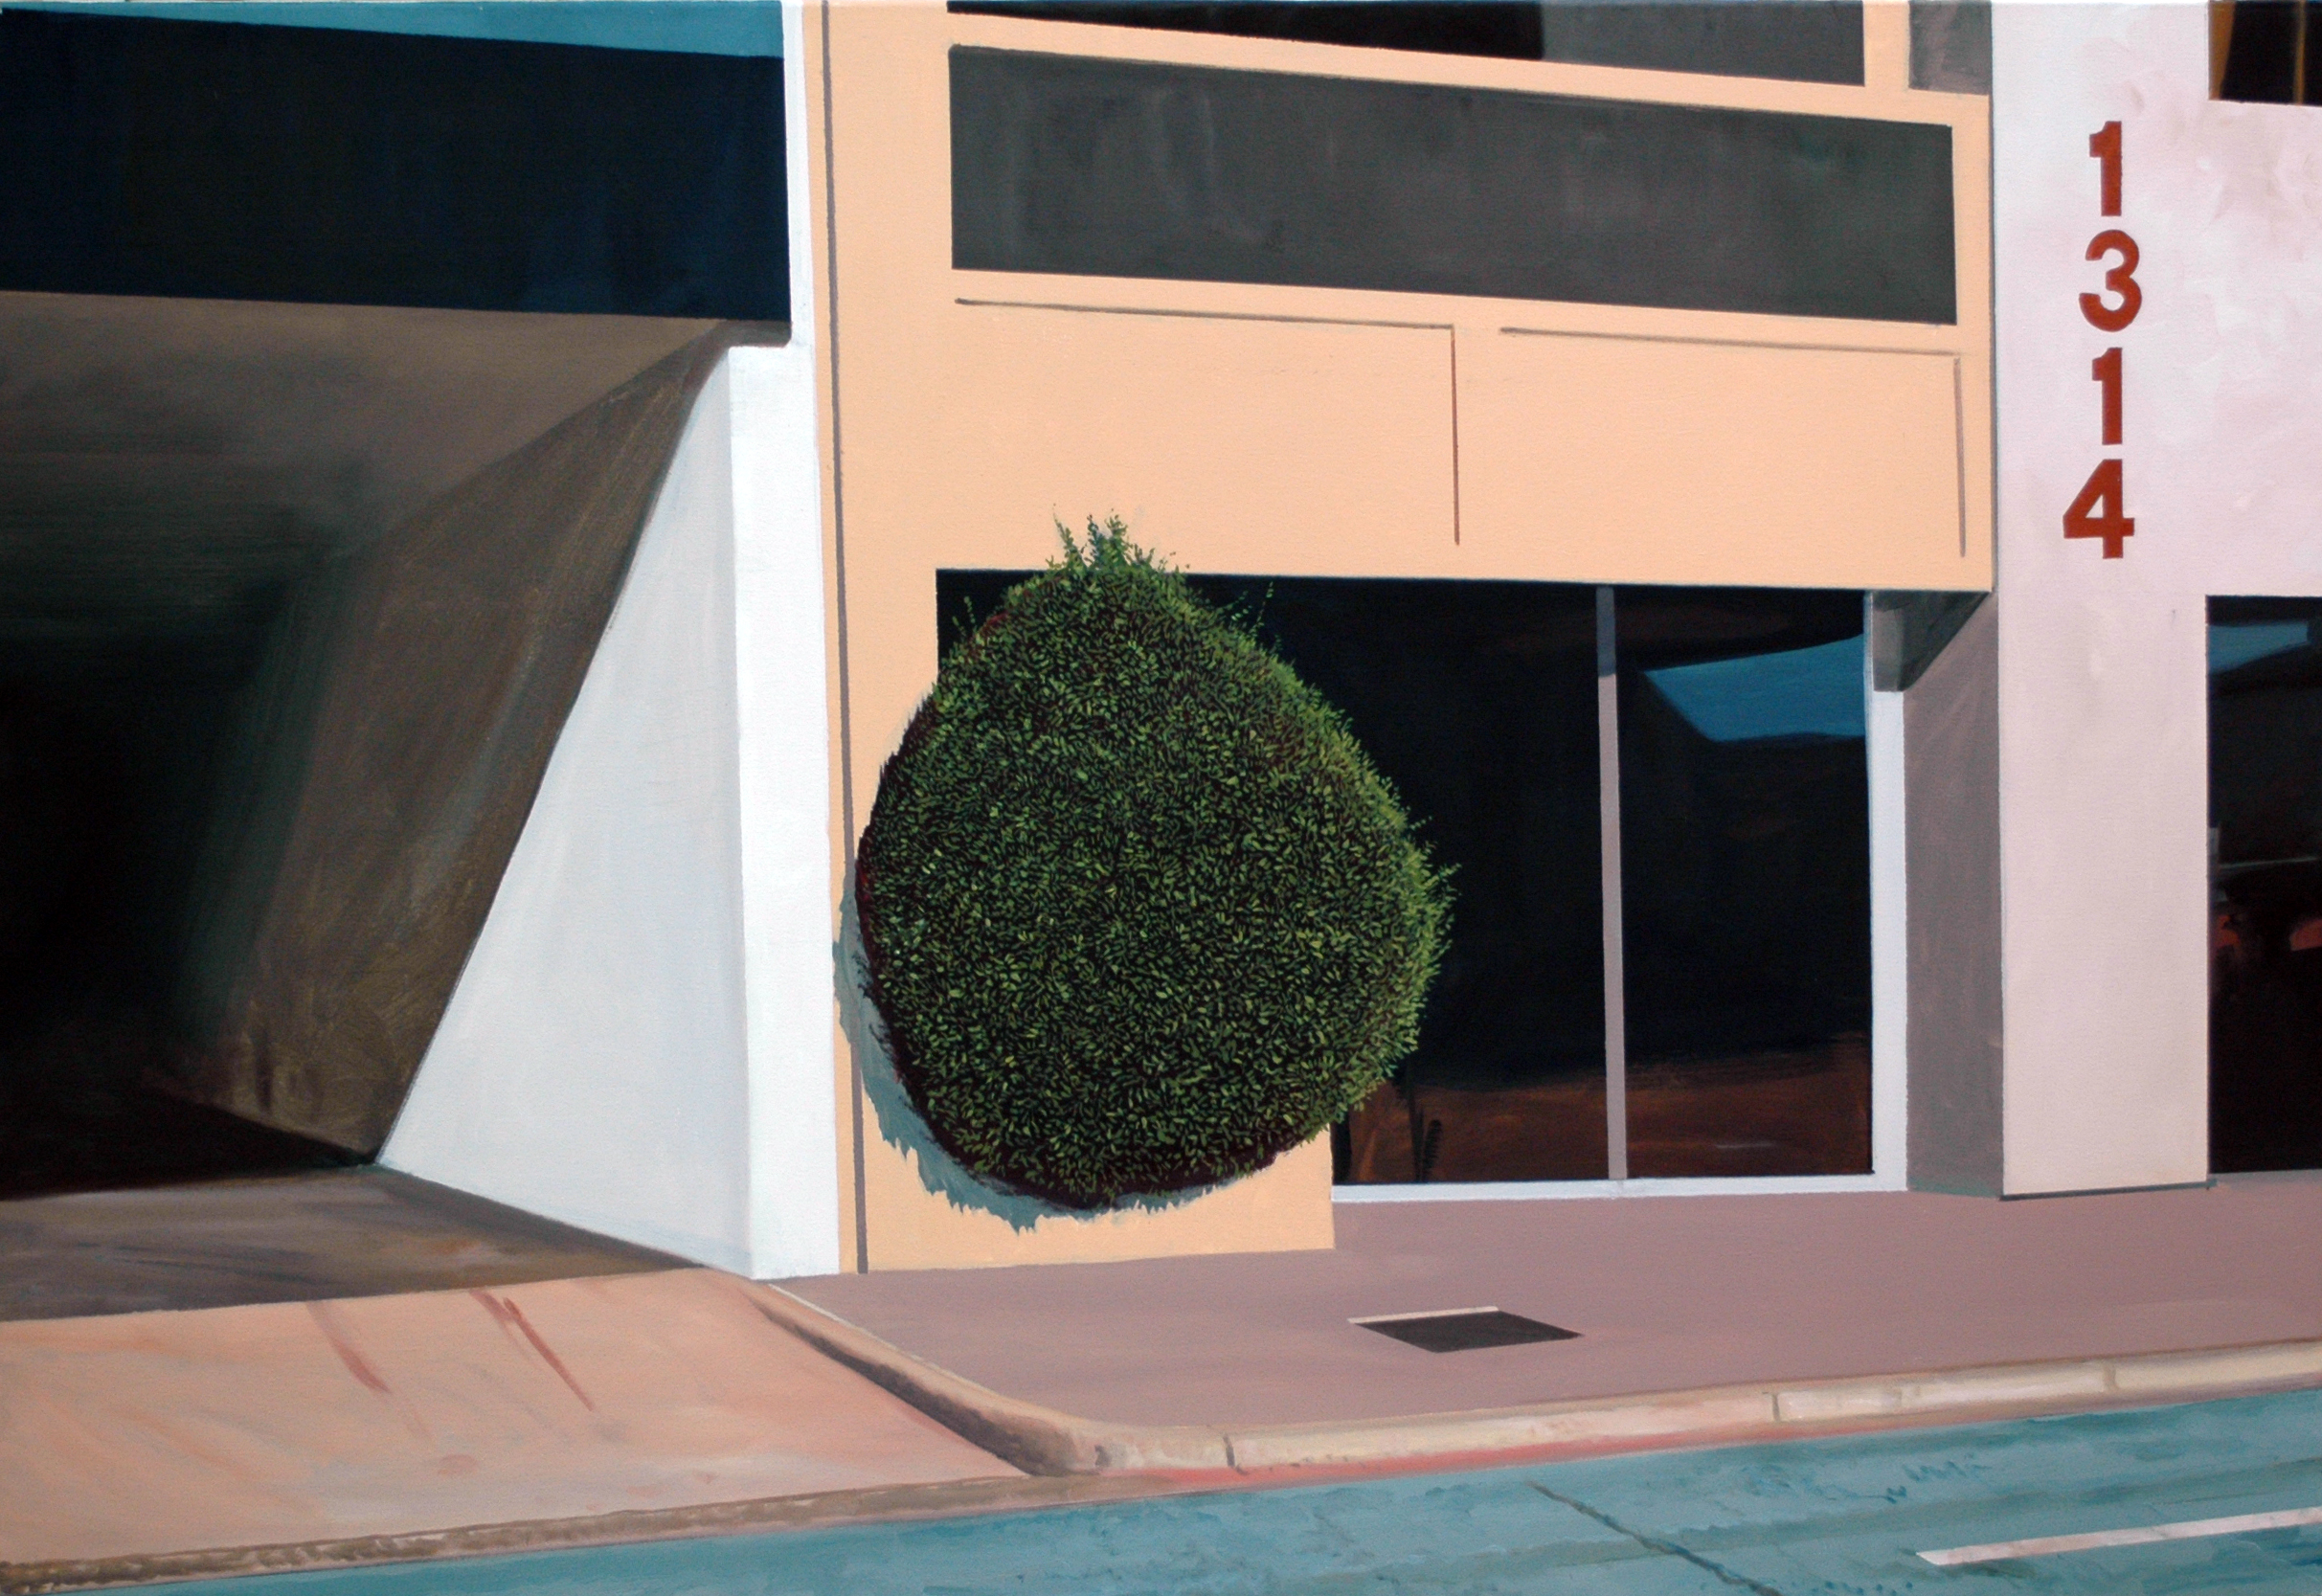 """Daniel Blagg,  Corporate Shrub,  oil on canvas, 36 x 52"""" $9,500. Contact Artspace111 to purchase."""